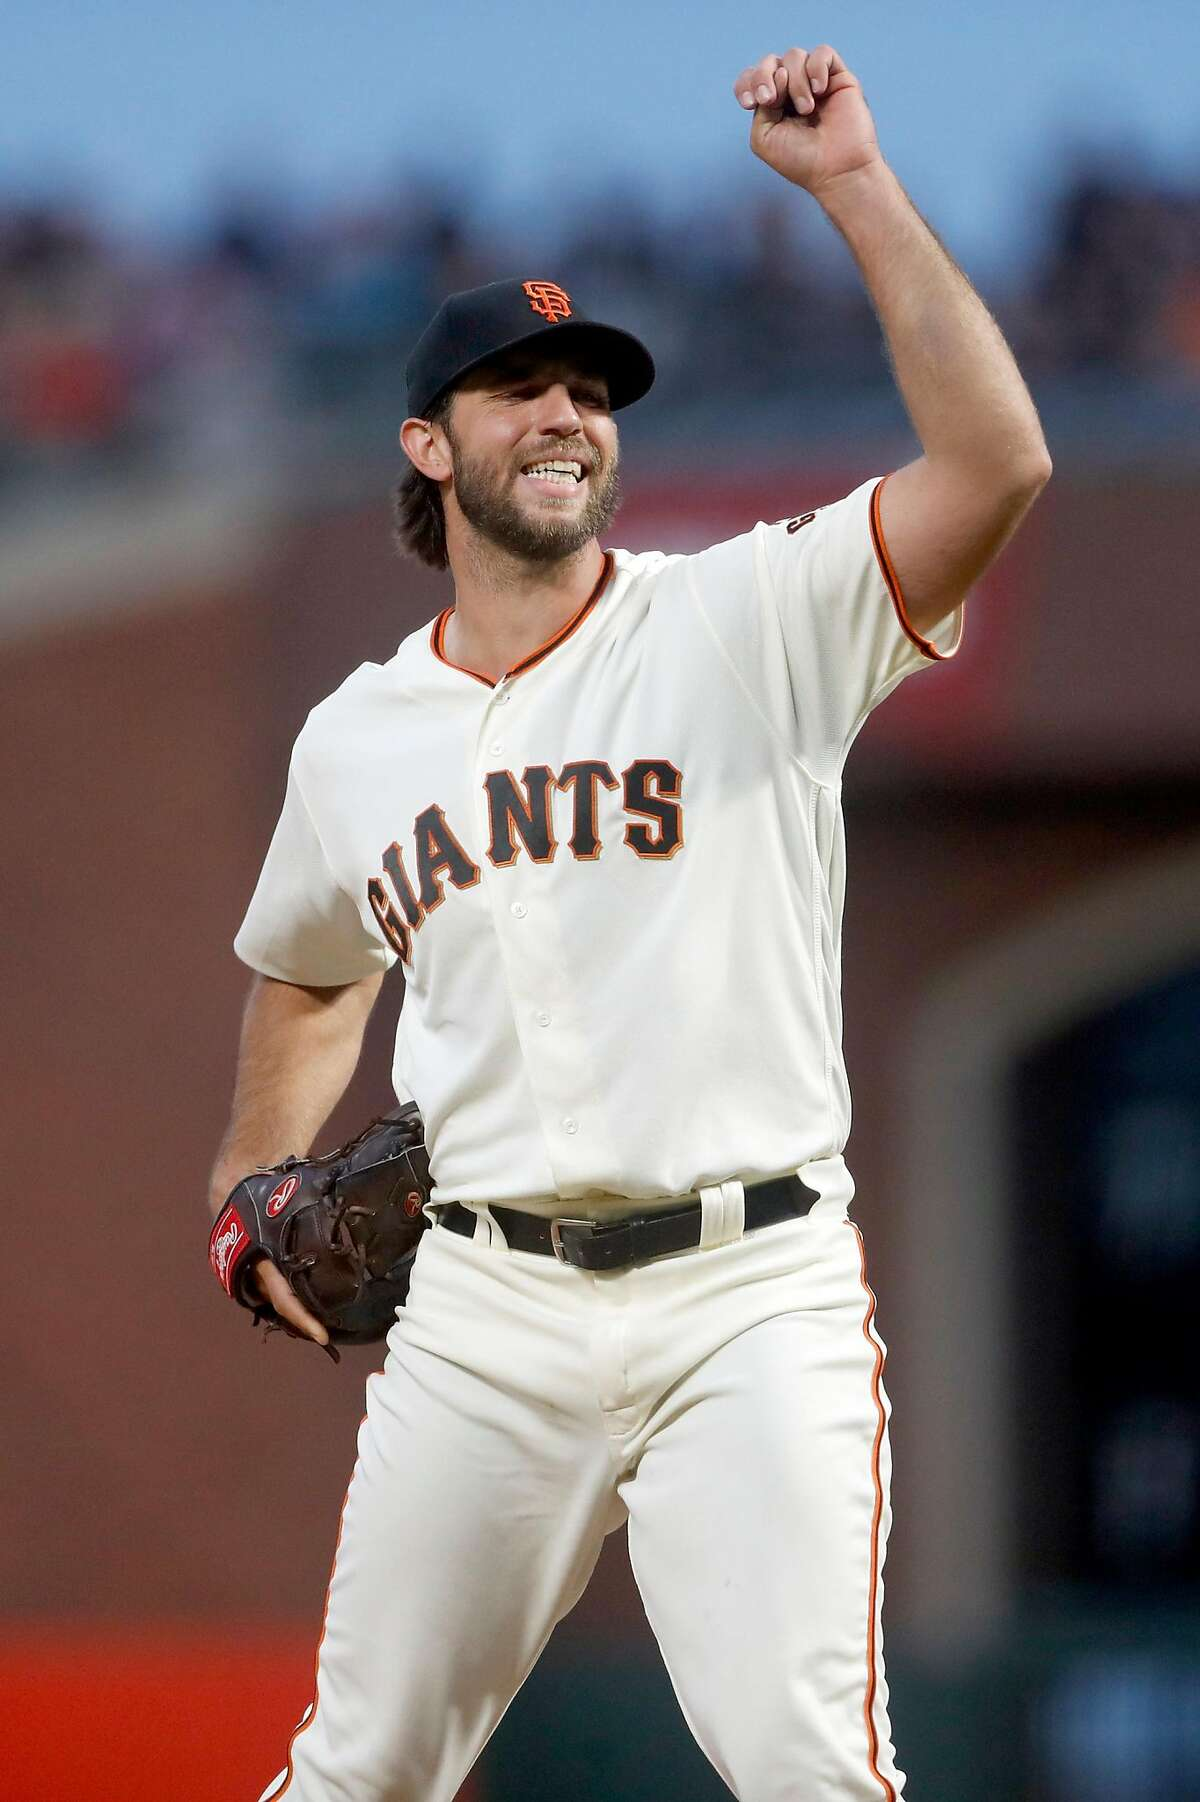 San Francisco Giants' Madison Bumgarner grimaces after throwing a pitch in 6th inning against New York Mets during MLB game at Oracle Park in San Francisco, Calif., on Thursday, July 18, 2019.